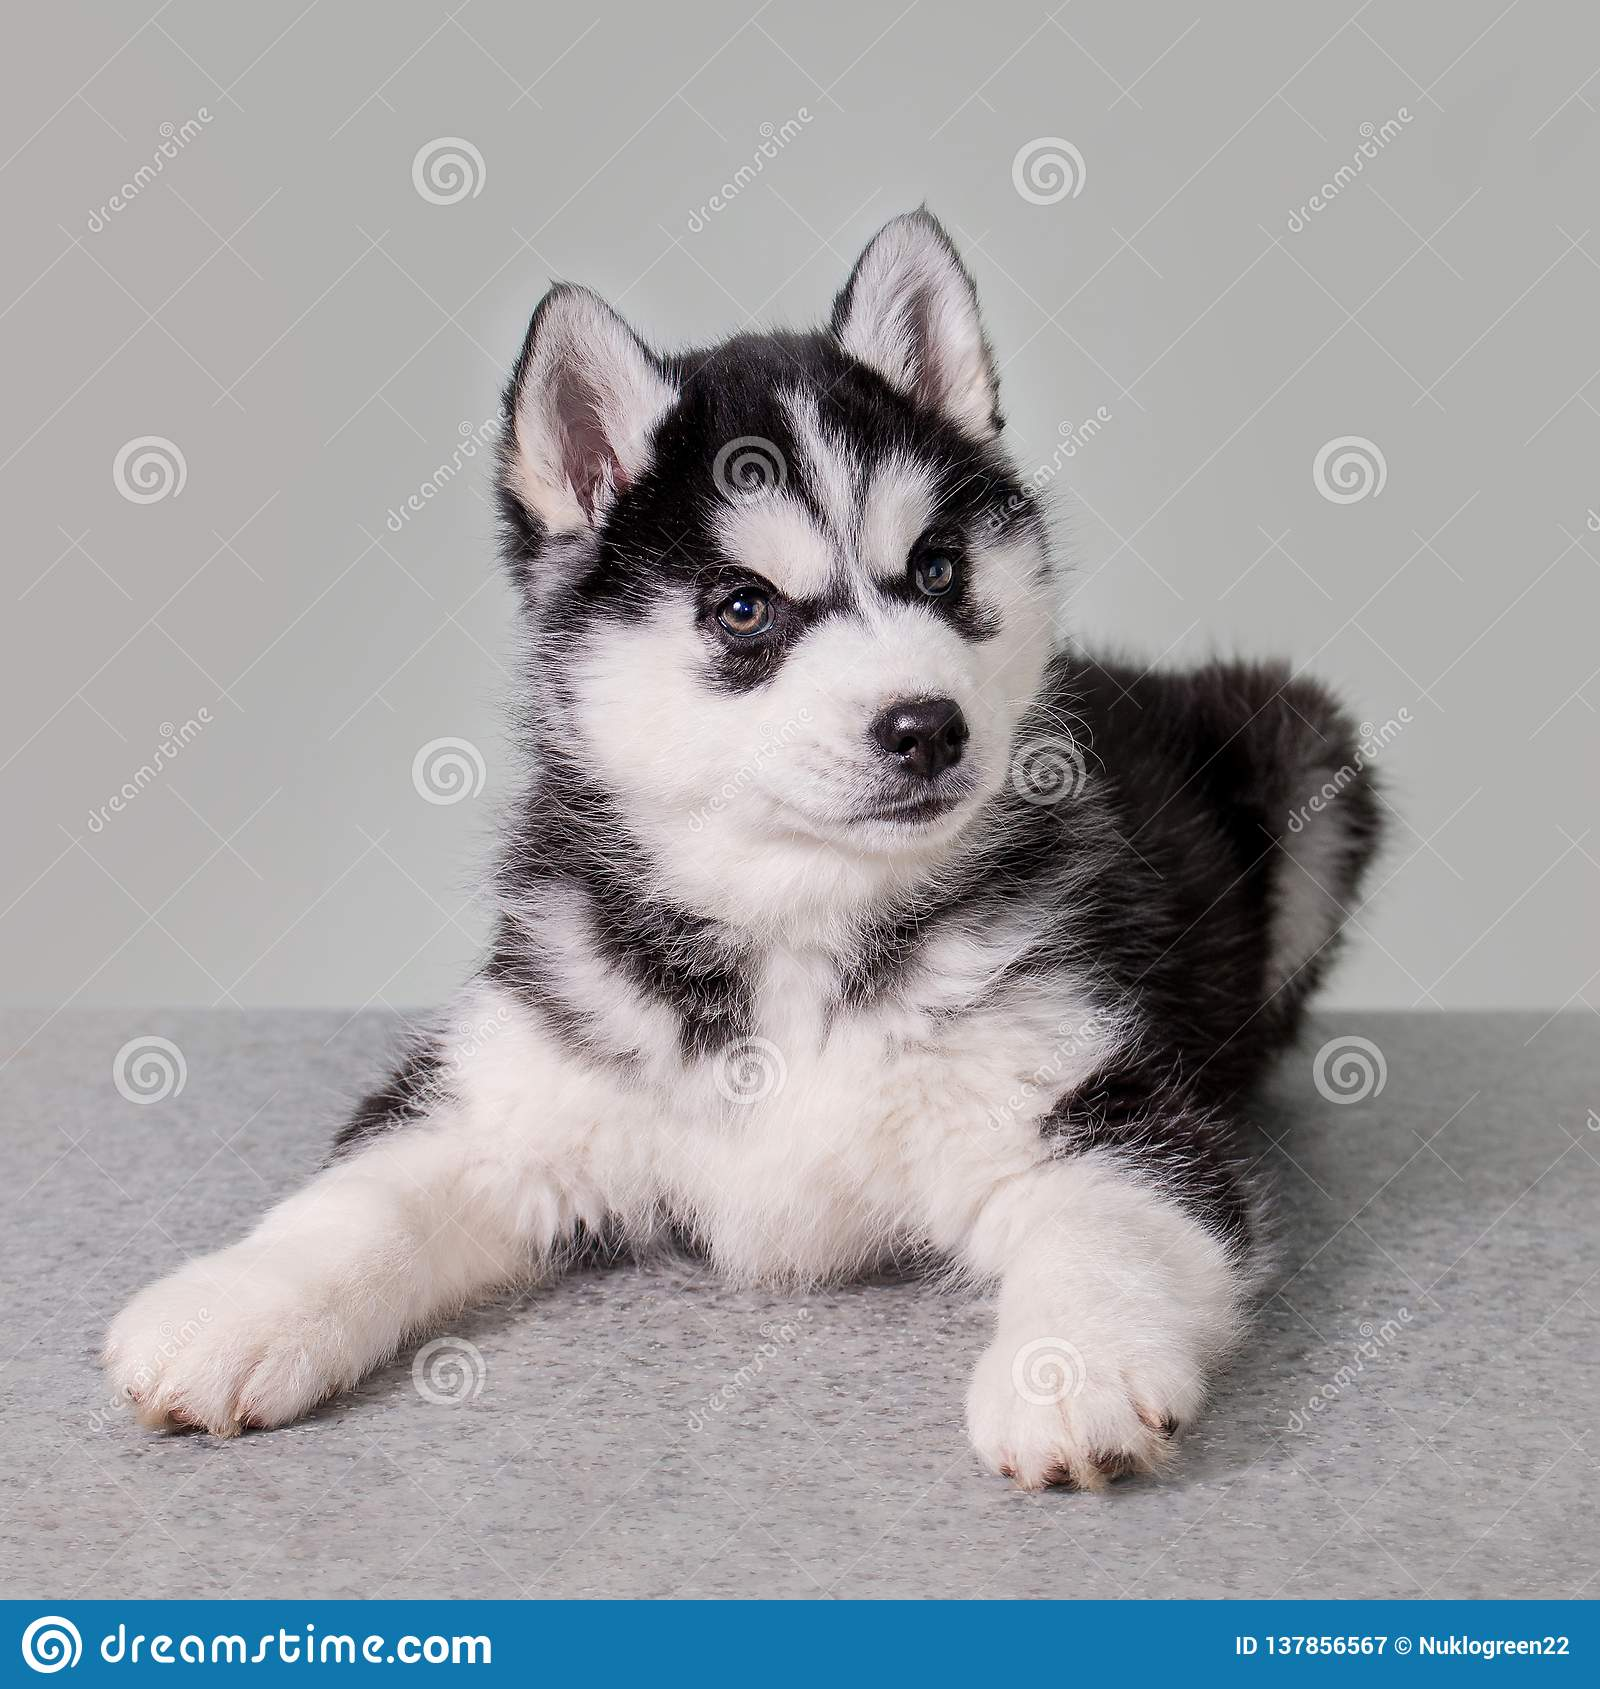 Cute Siberian Husky Puppy Sitting On White Background Stock Image Image Of Animal Doggy 137856567